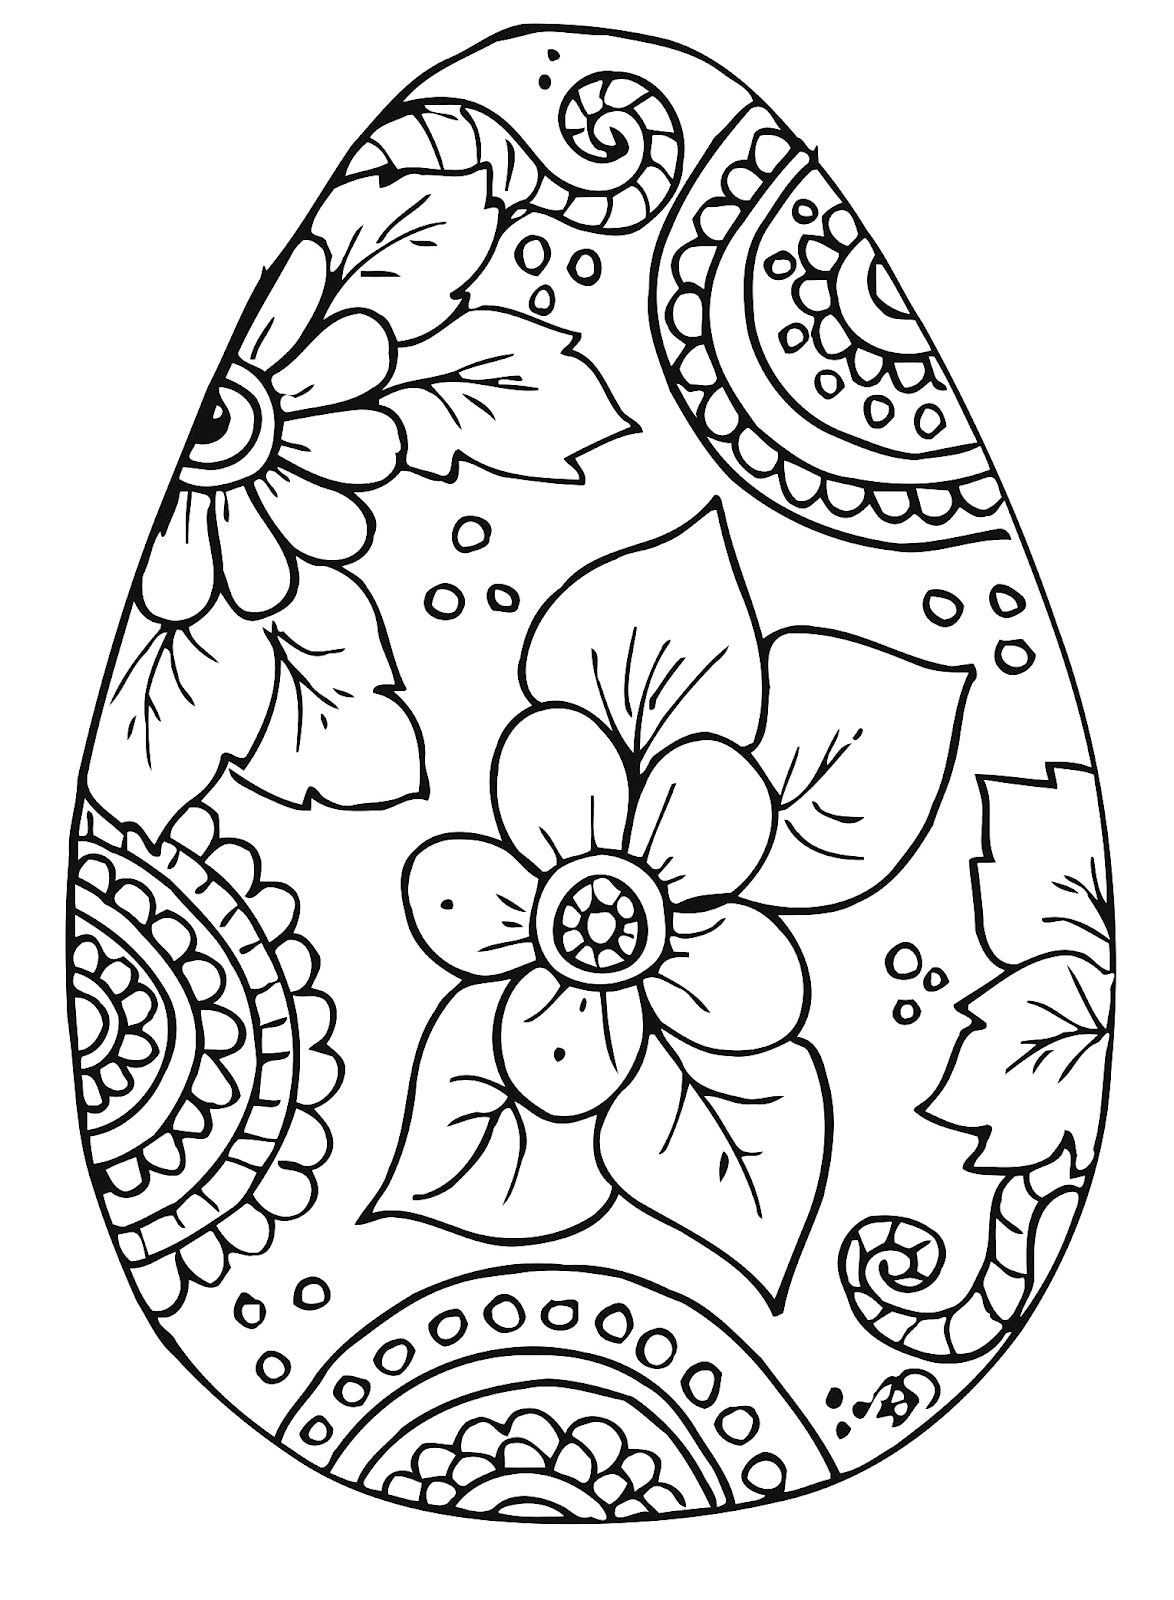 Easter Coloring 10 Cool Free Printable Easter Coloring Pages for Gallery Of Easter Basket Coloring Pages to Print Gallery